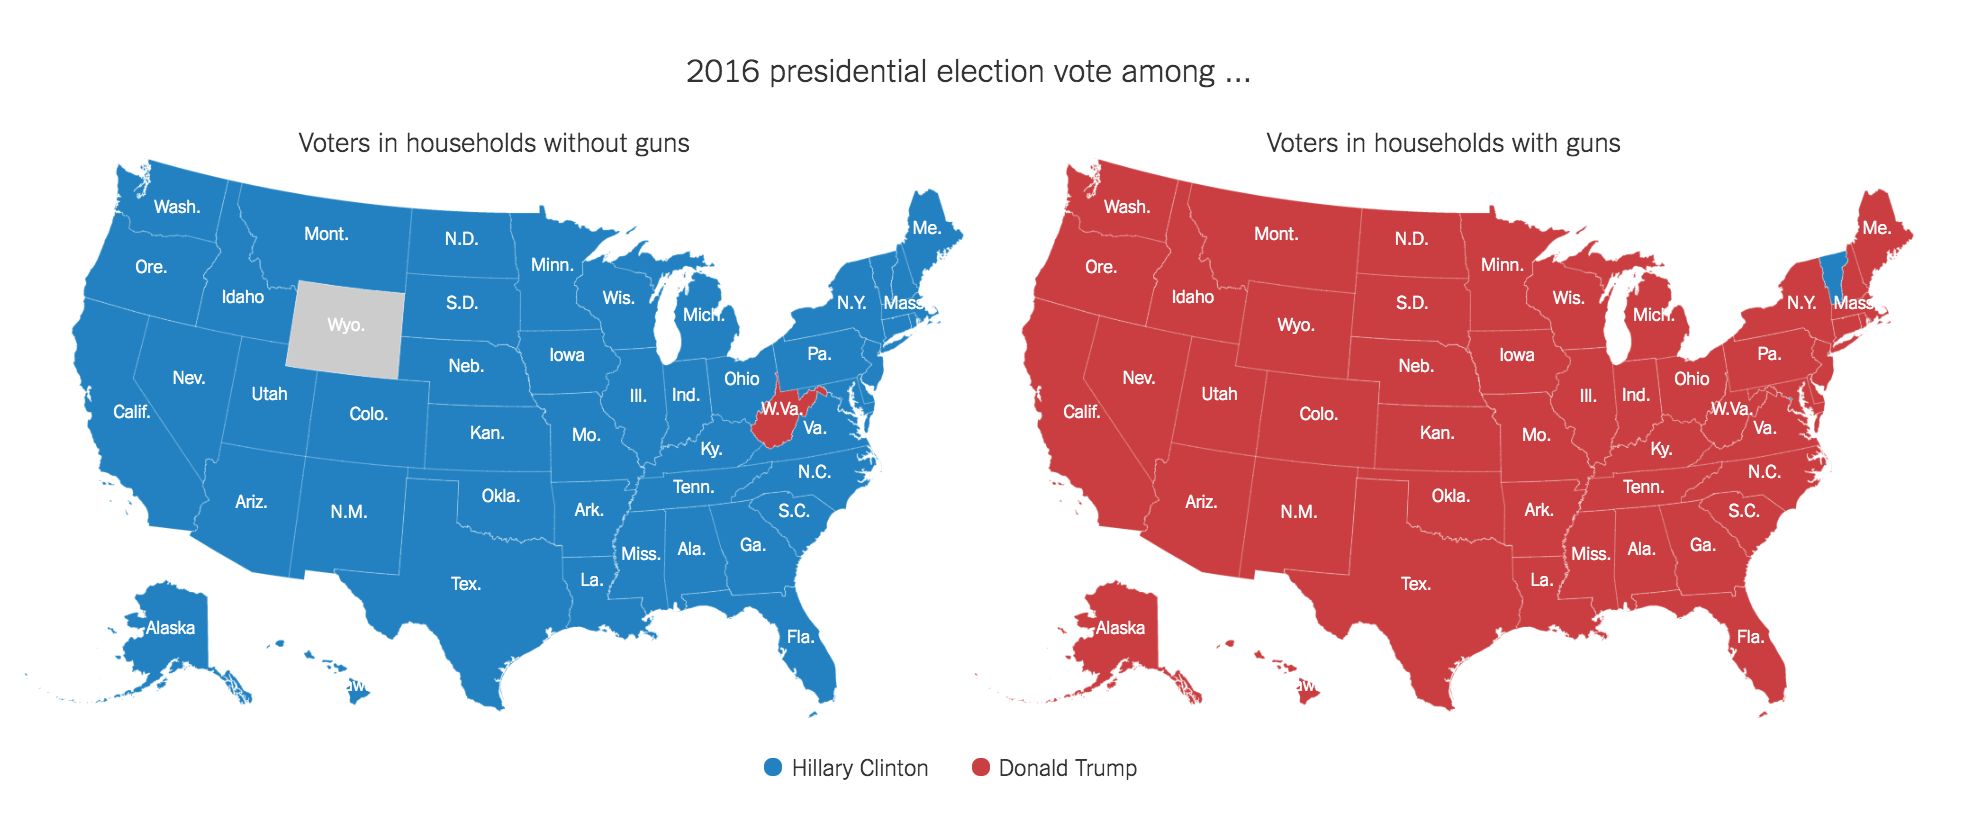 Clinton voters and guns; Trump voters and guns